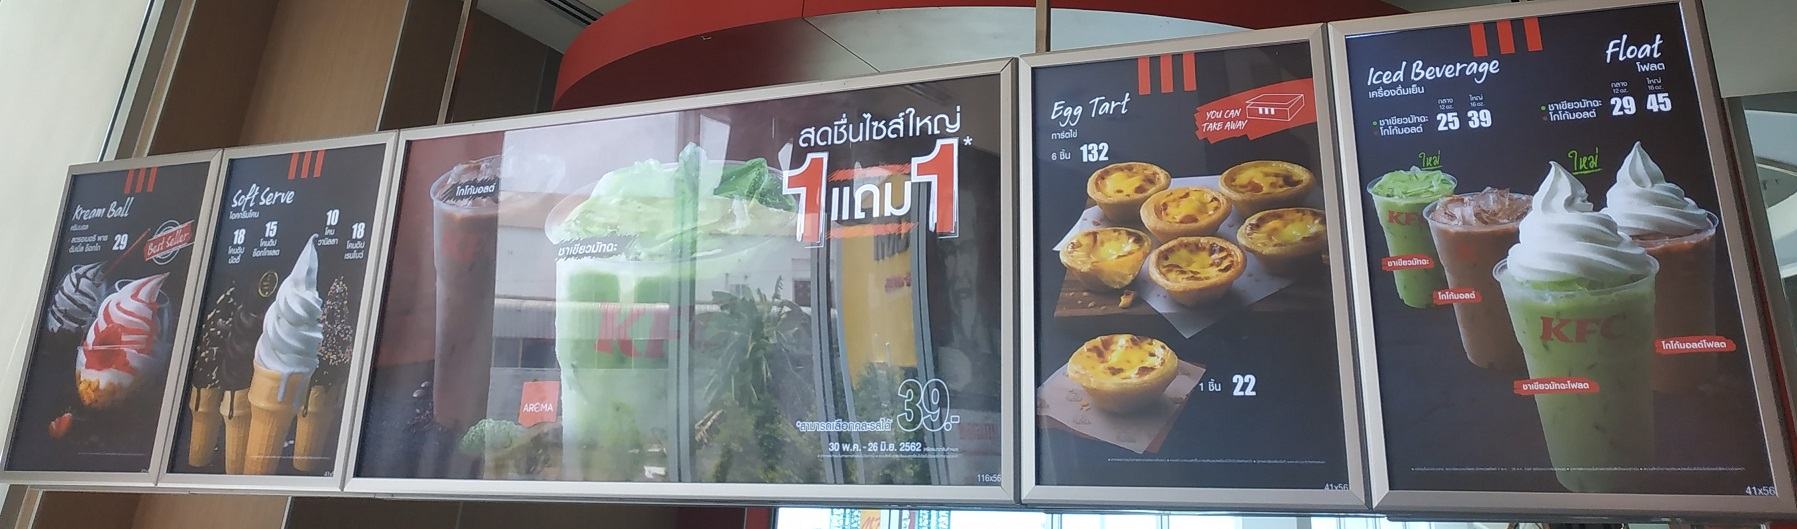 KFC menu in Thailand